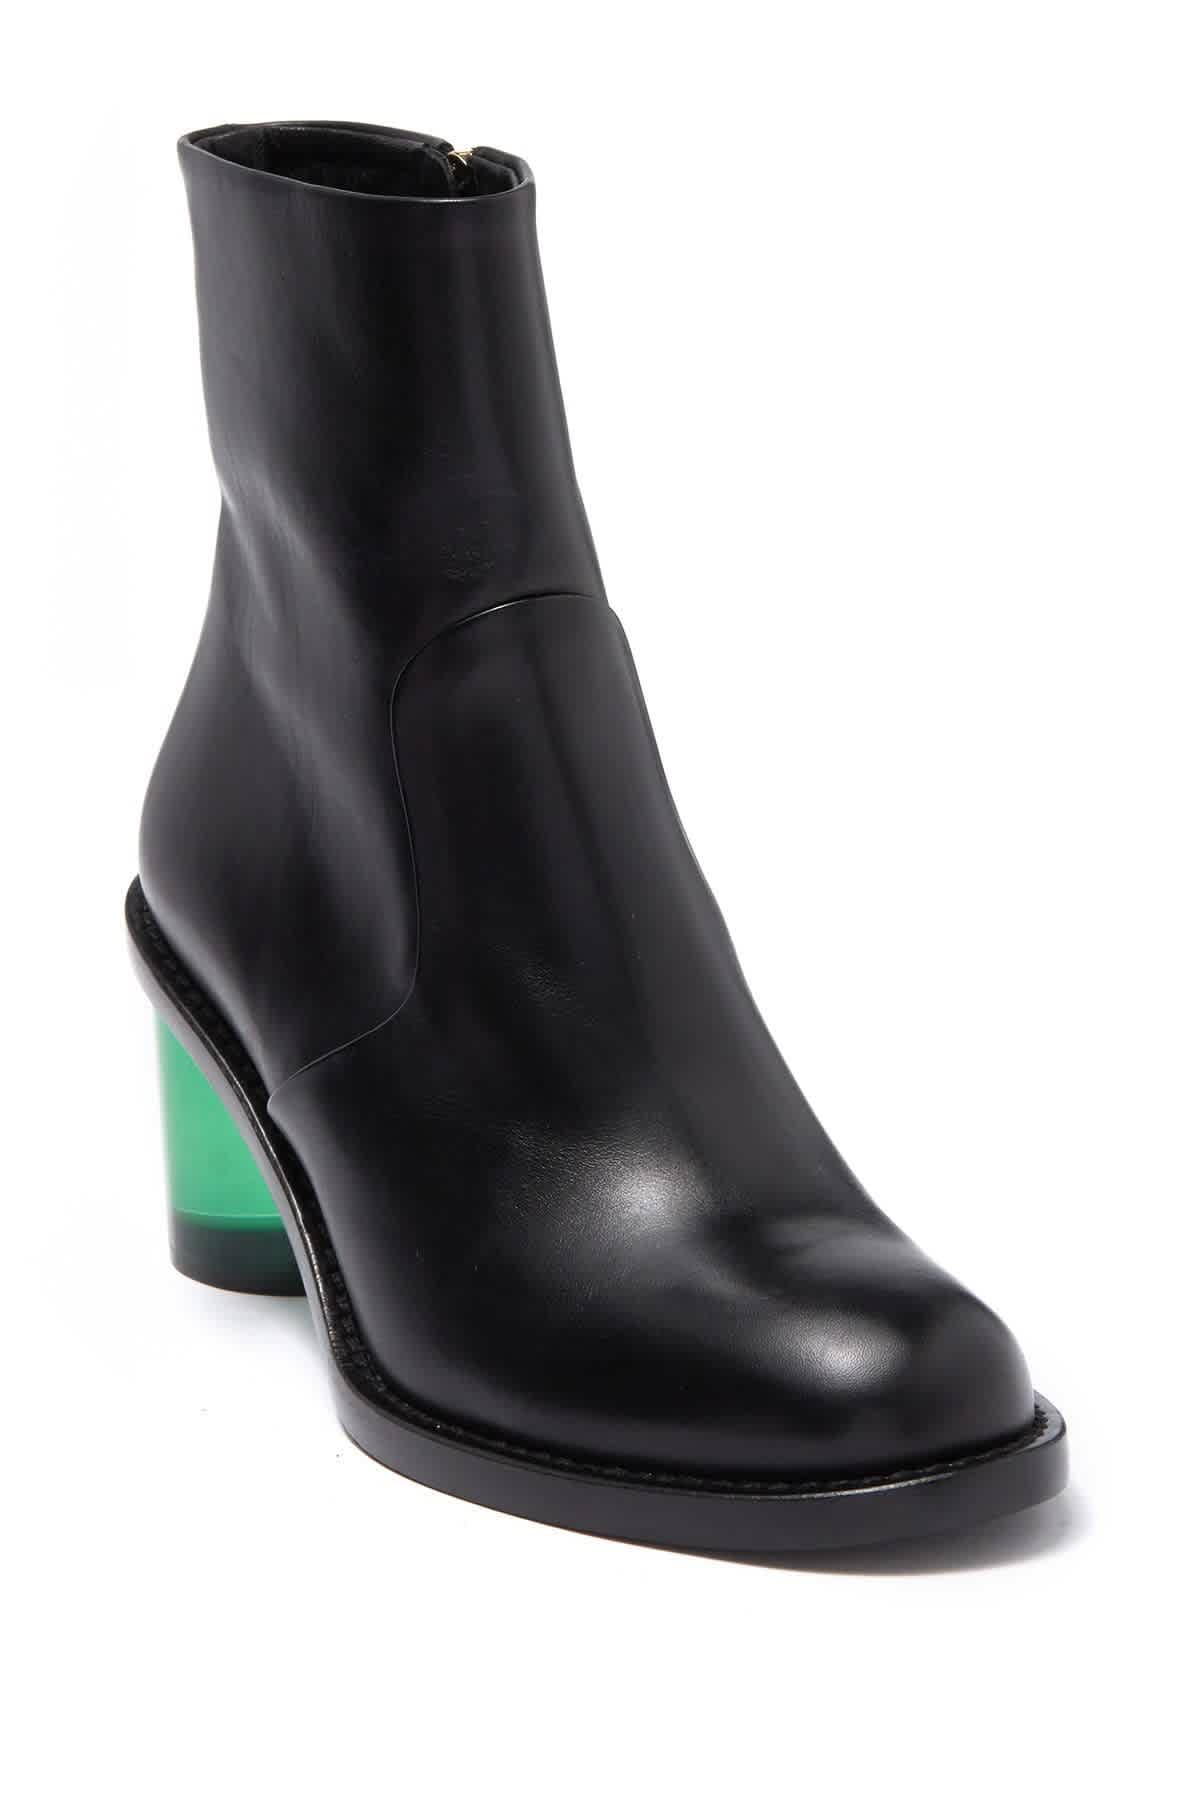 Burberry Ladies Black Westella Leather Bootie